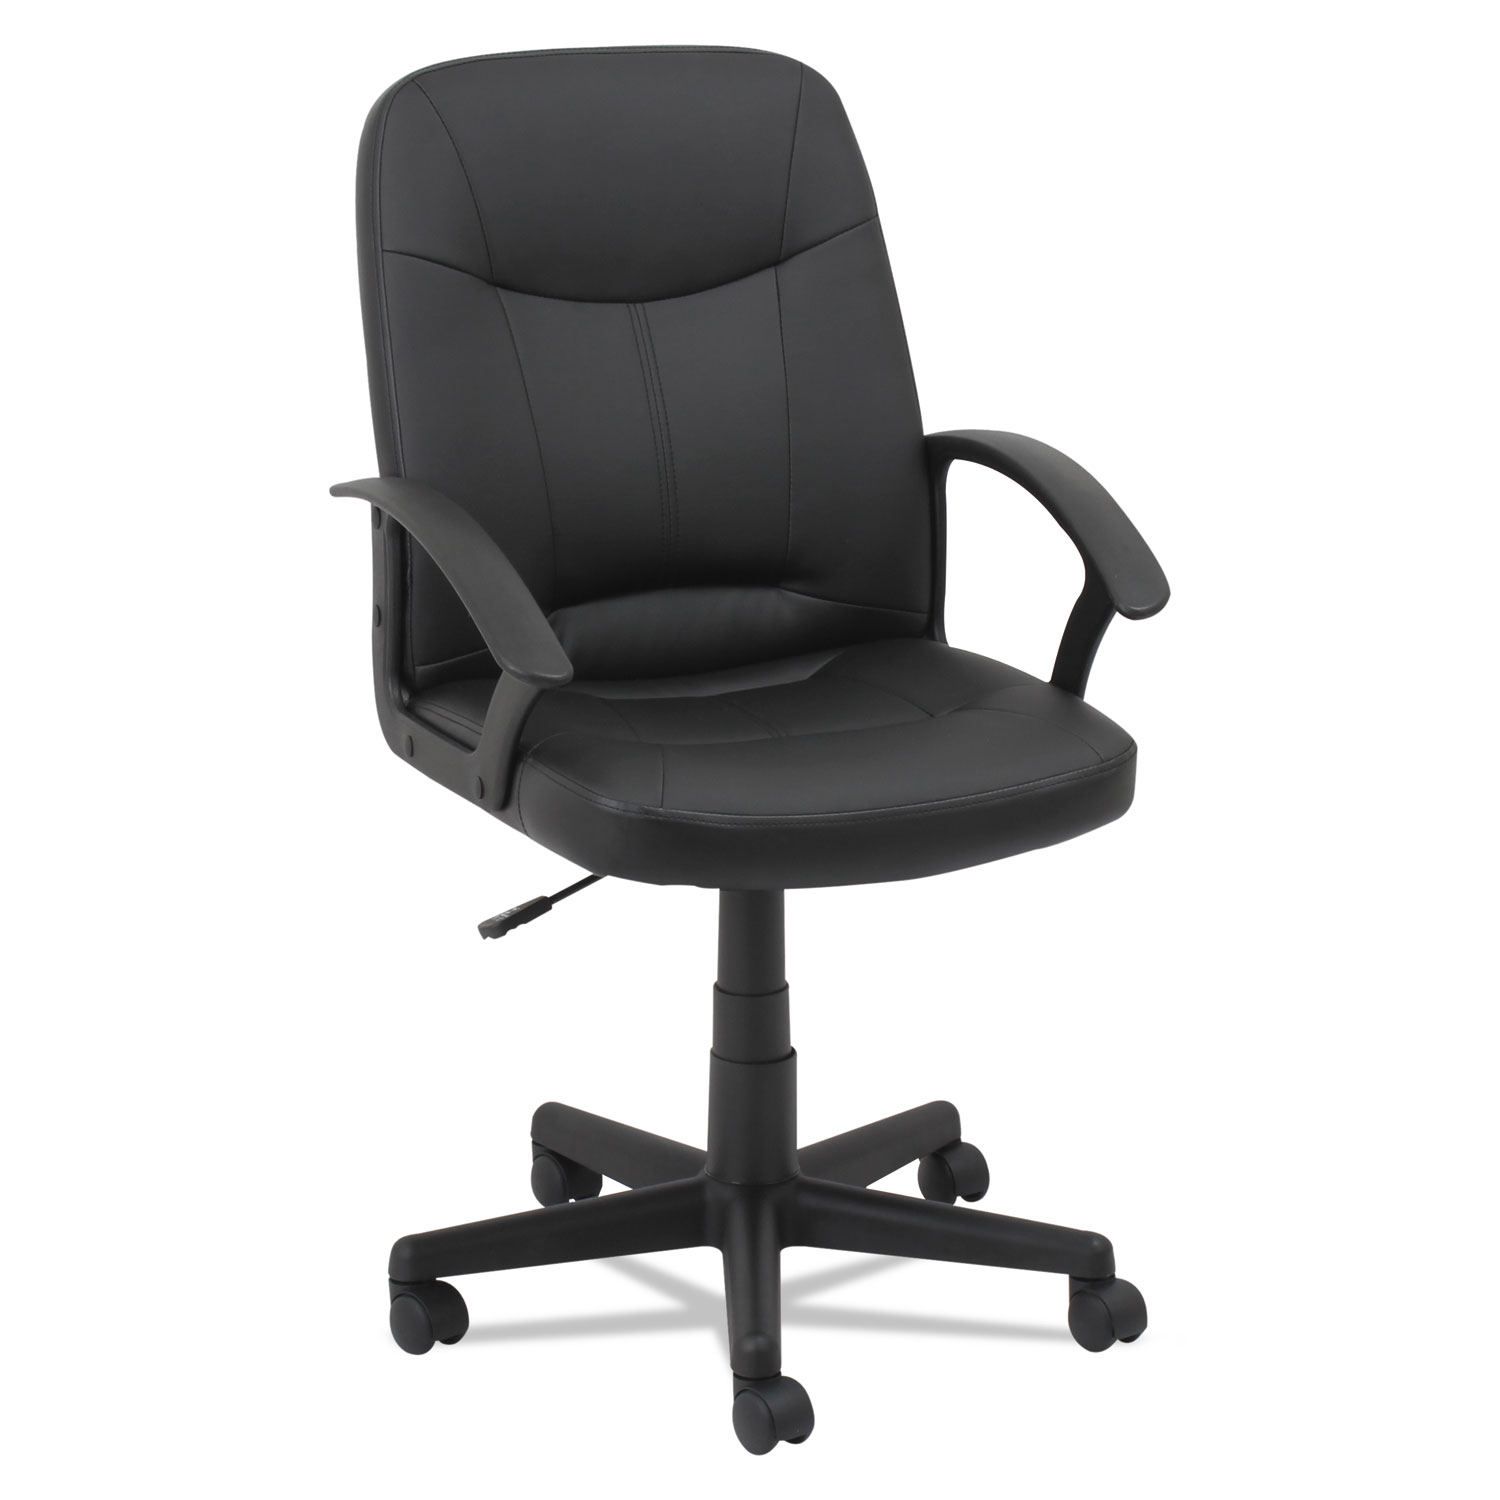 leather office chairs without arms fishing chair with rod holder executive by oif oiflb4219 ontimesupplies